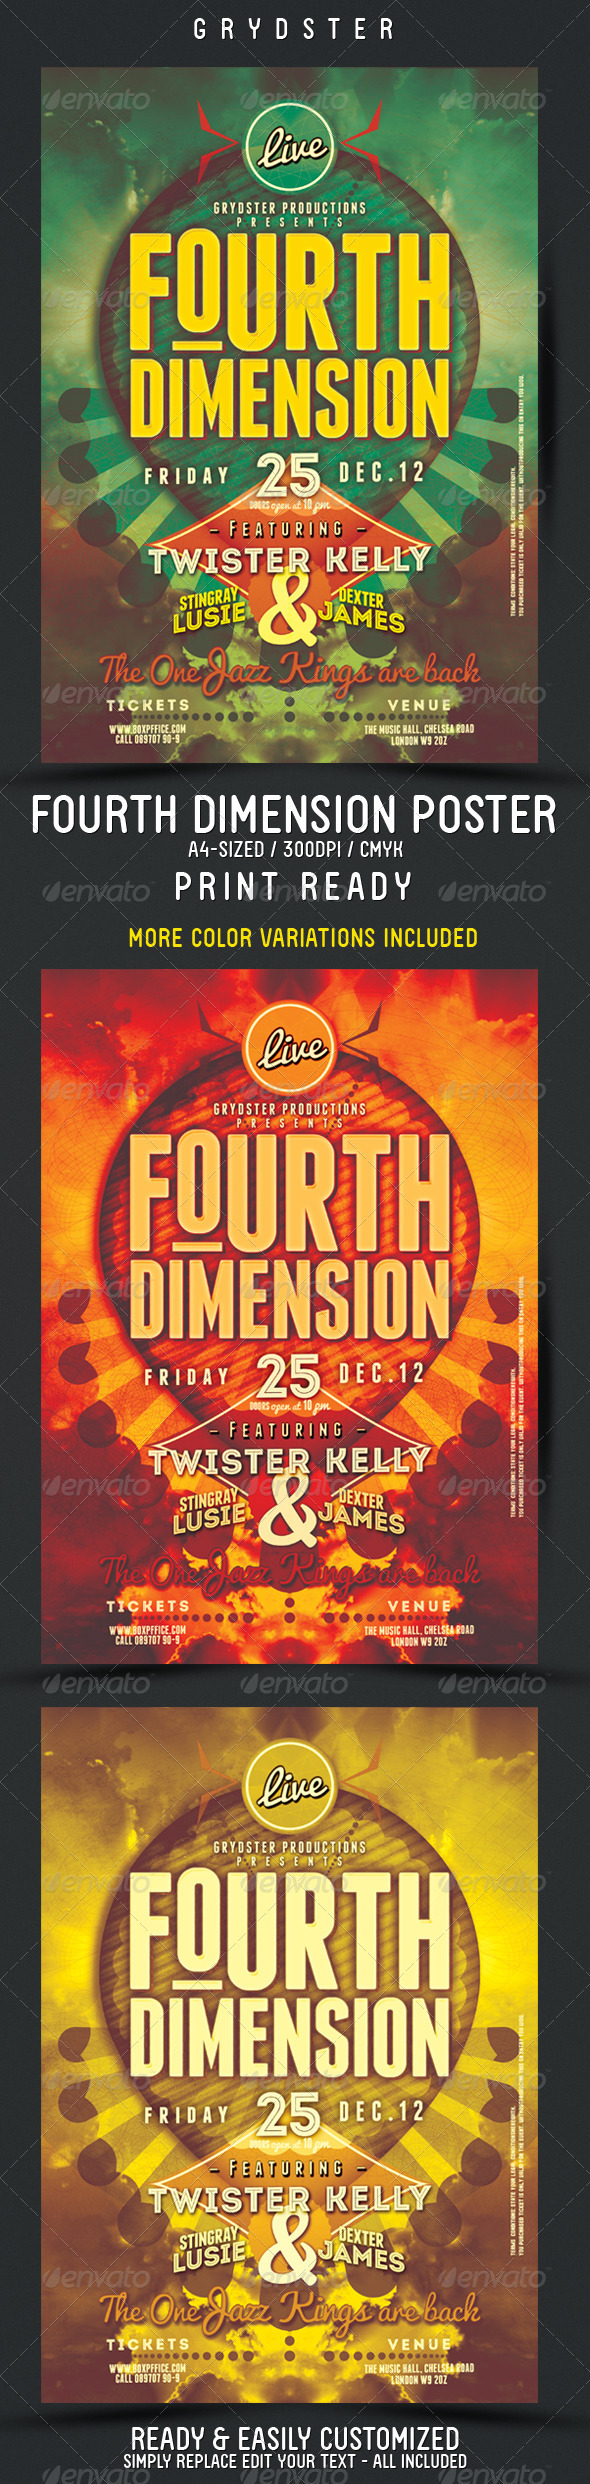 Fourth Dimension Flyer Poster